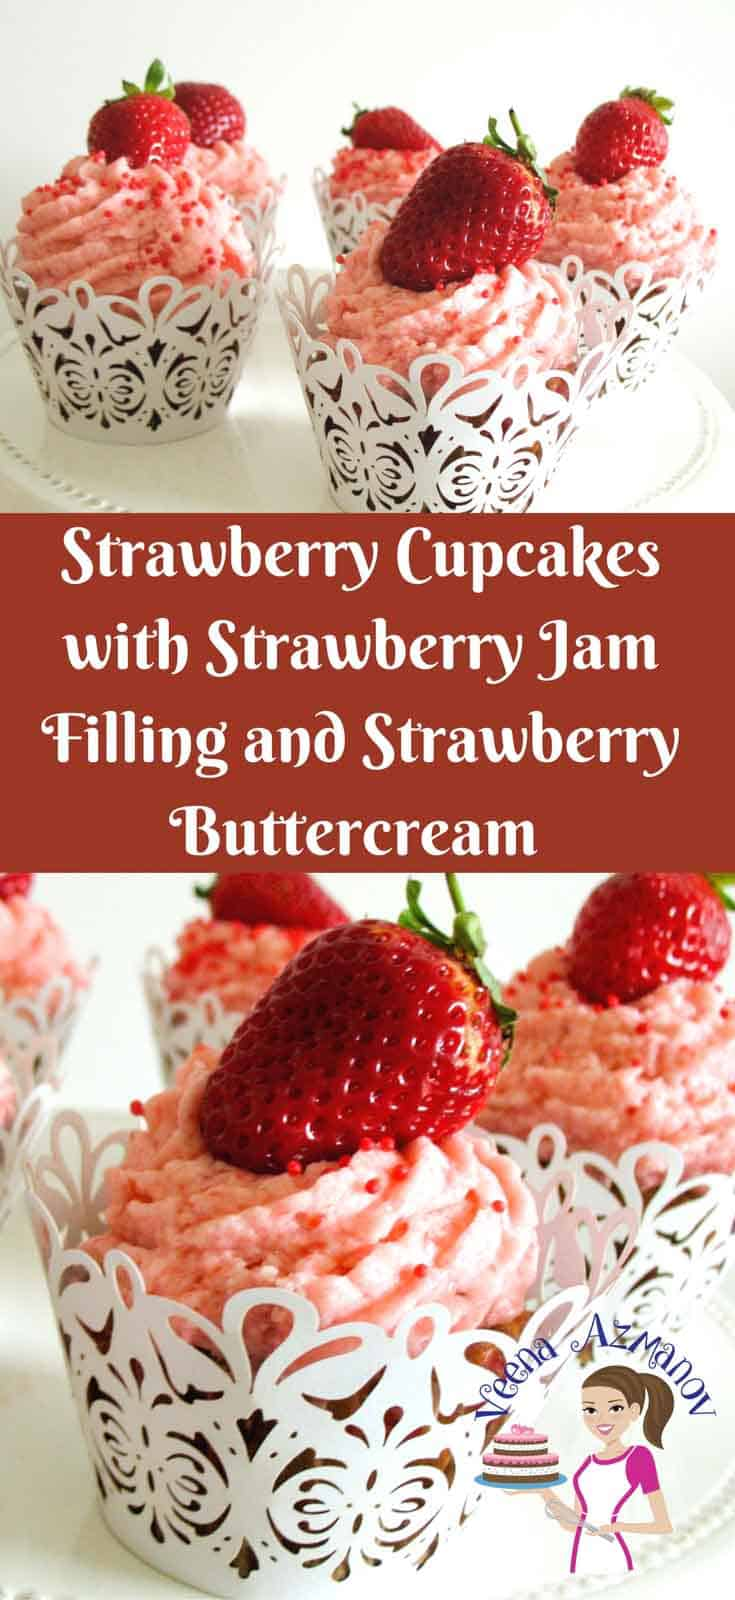 Strawberry cupcakes with strawberry jam filling and strawberry icing